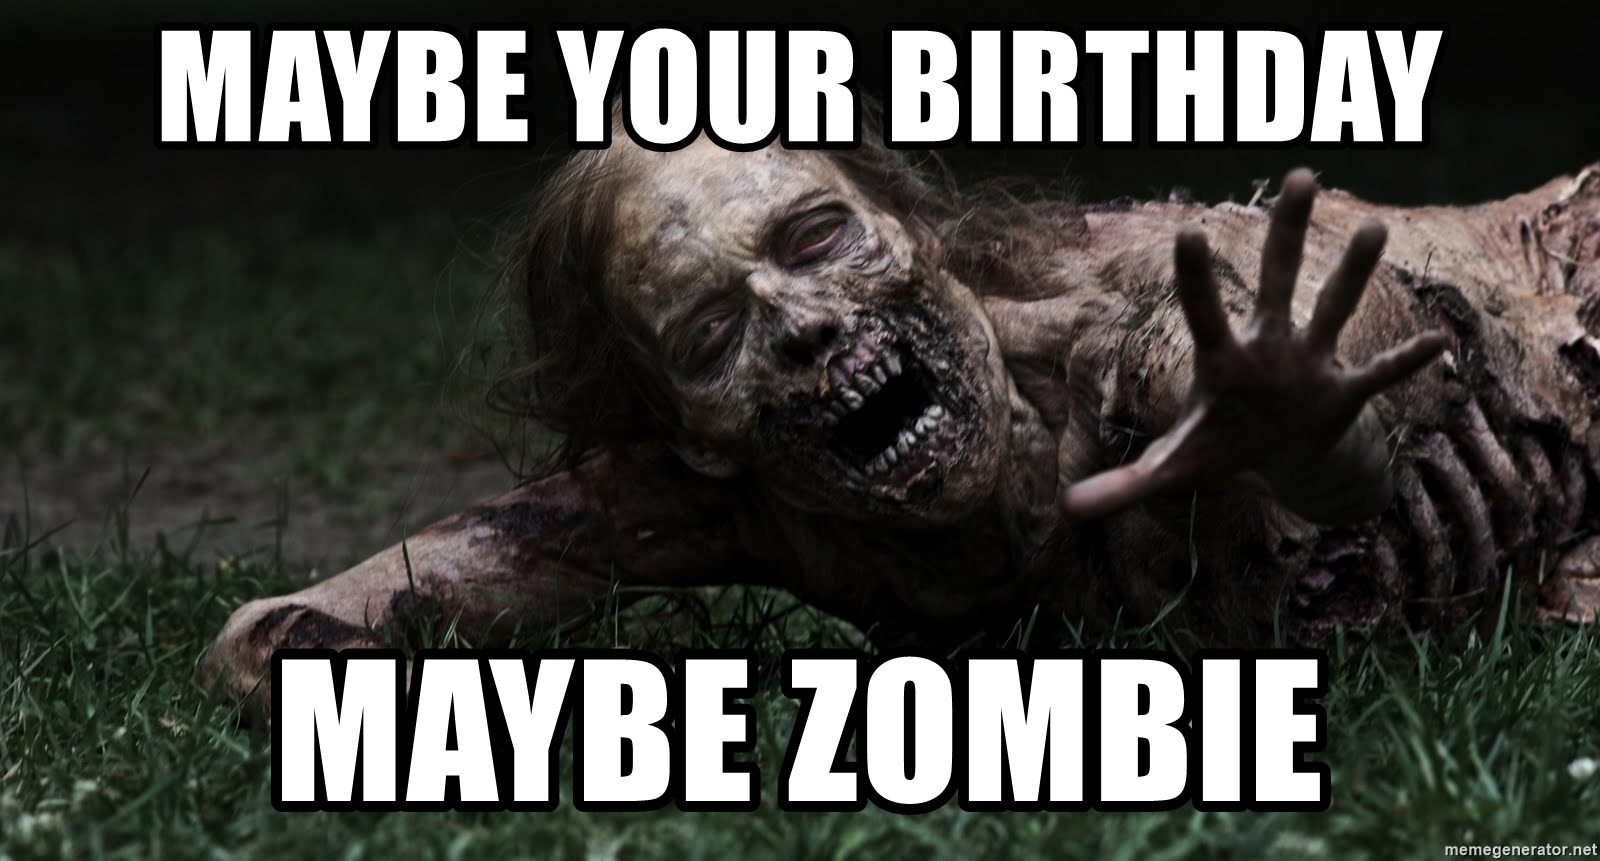 Maybe your birthday maybe zombie zombie the walking dead meme generator